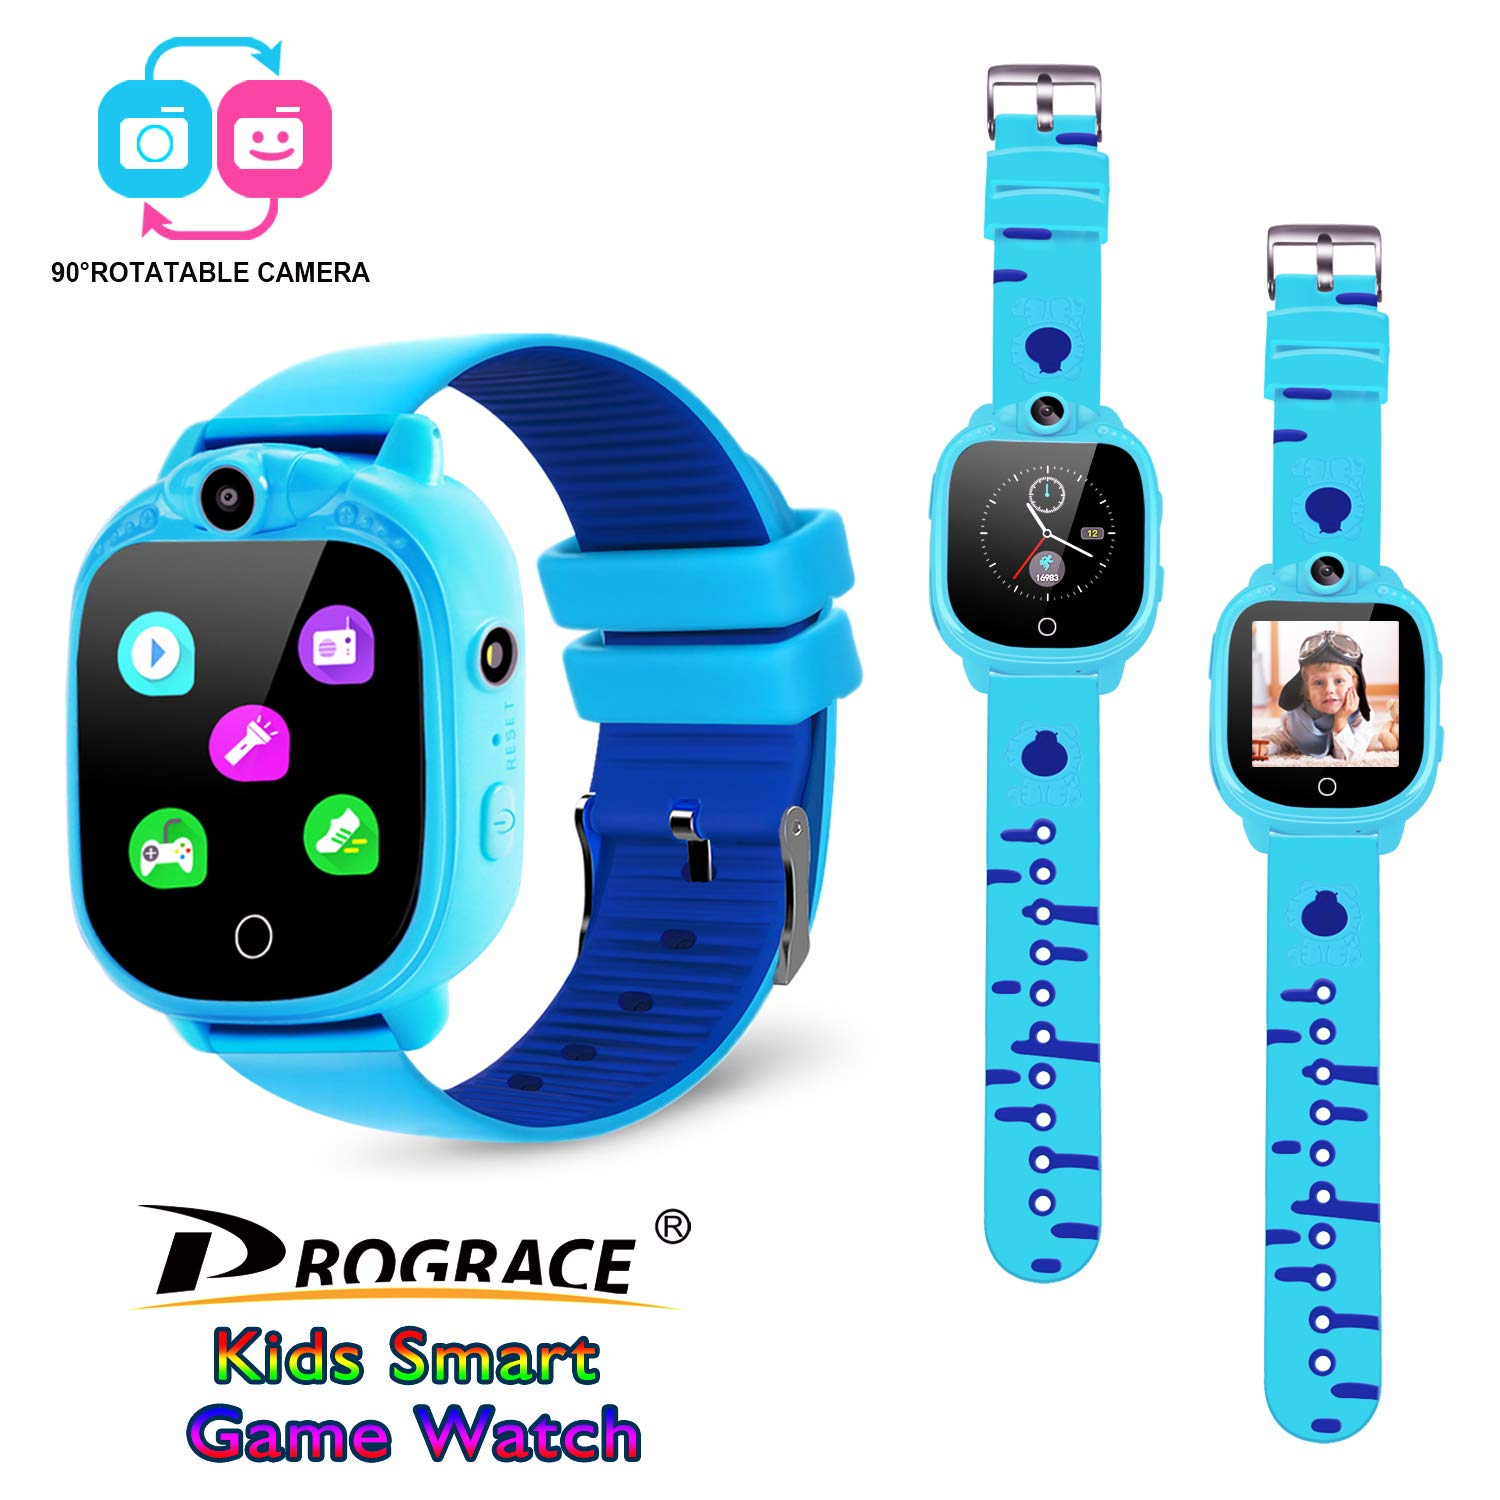 PROGRACE Kids Smartwatch with 90 Rotatable Camera Touchscreen Kids Watch Music Pedometer Flashlight Games FM Radio Kids Smart Watch Sports Watches Digital Wrist Watch for Boys